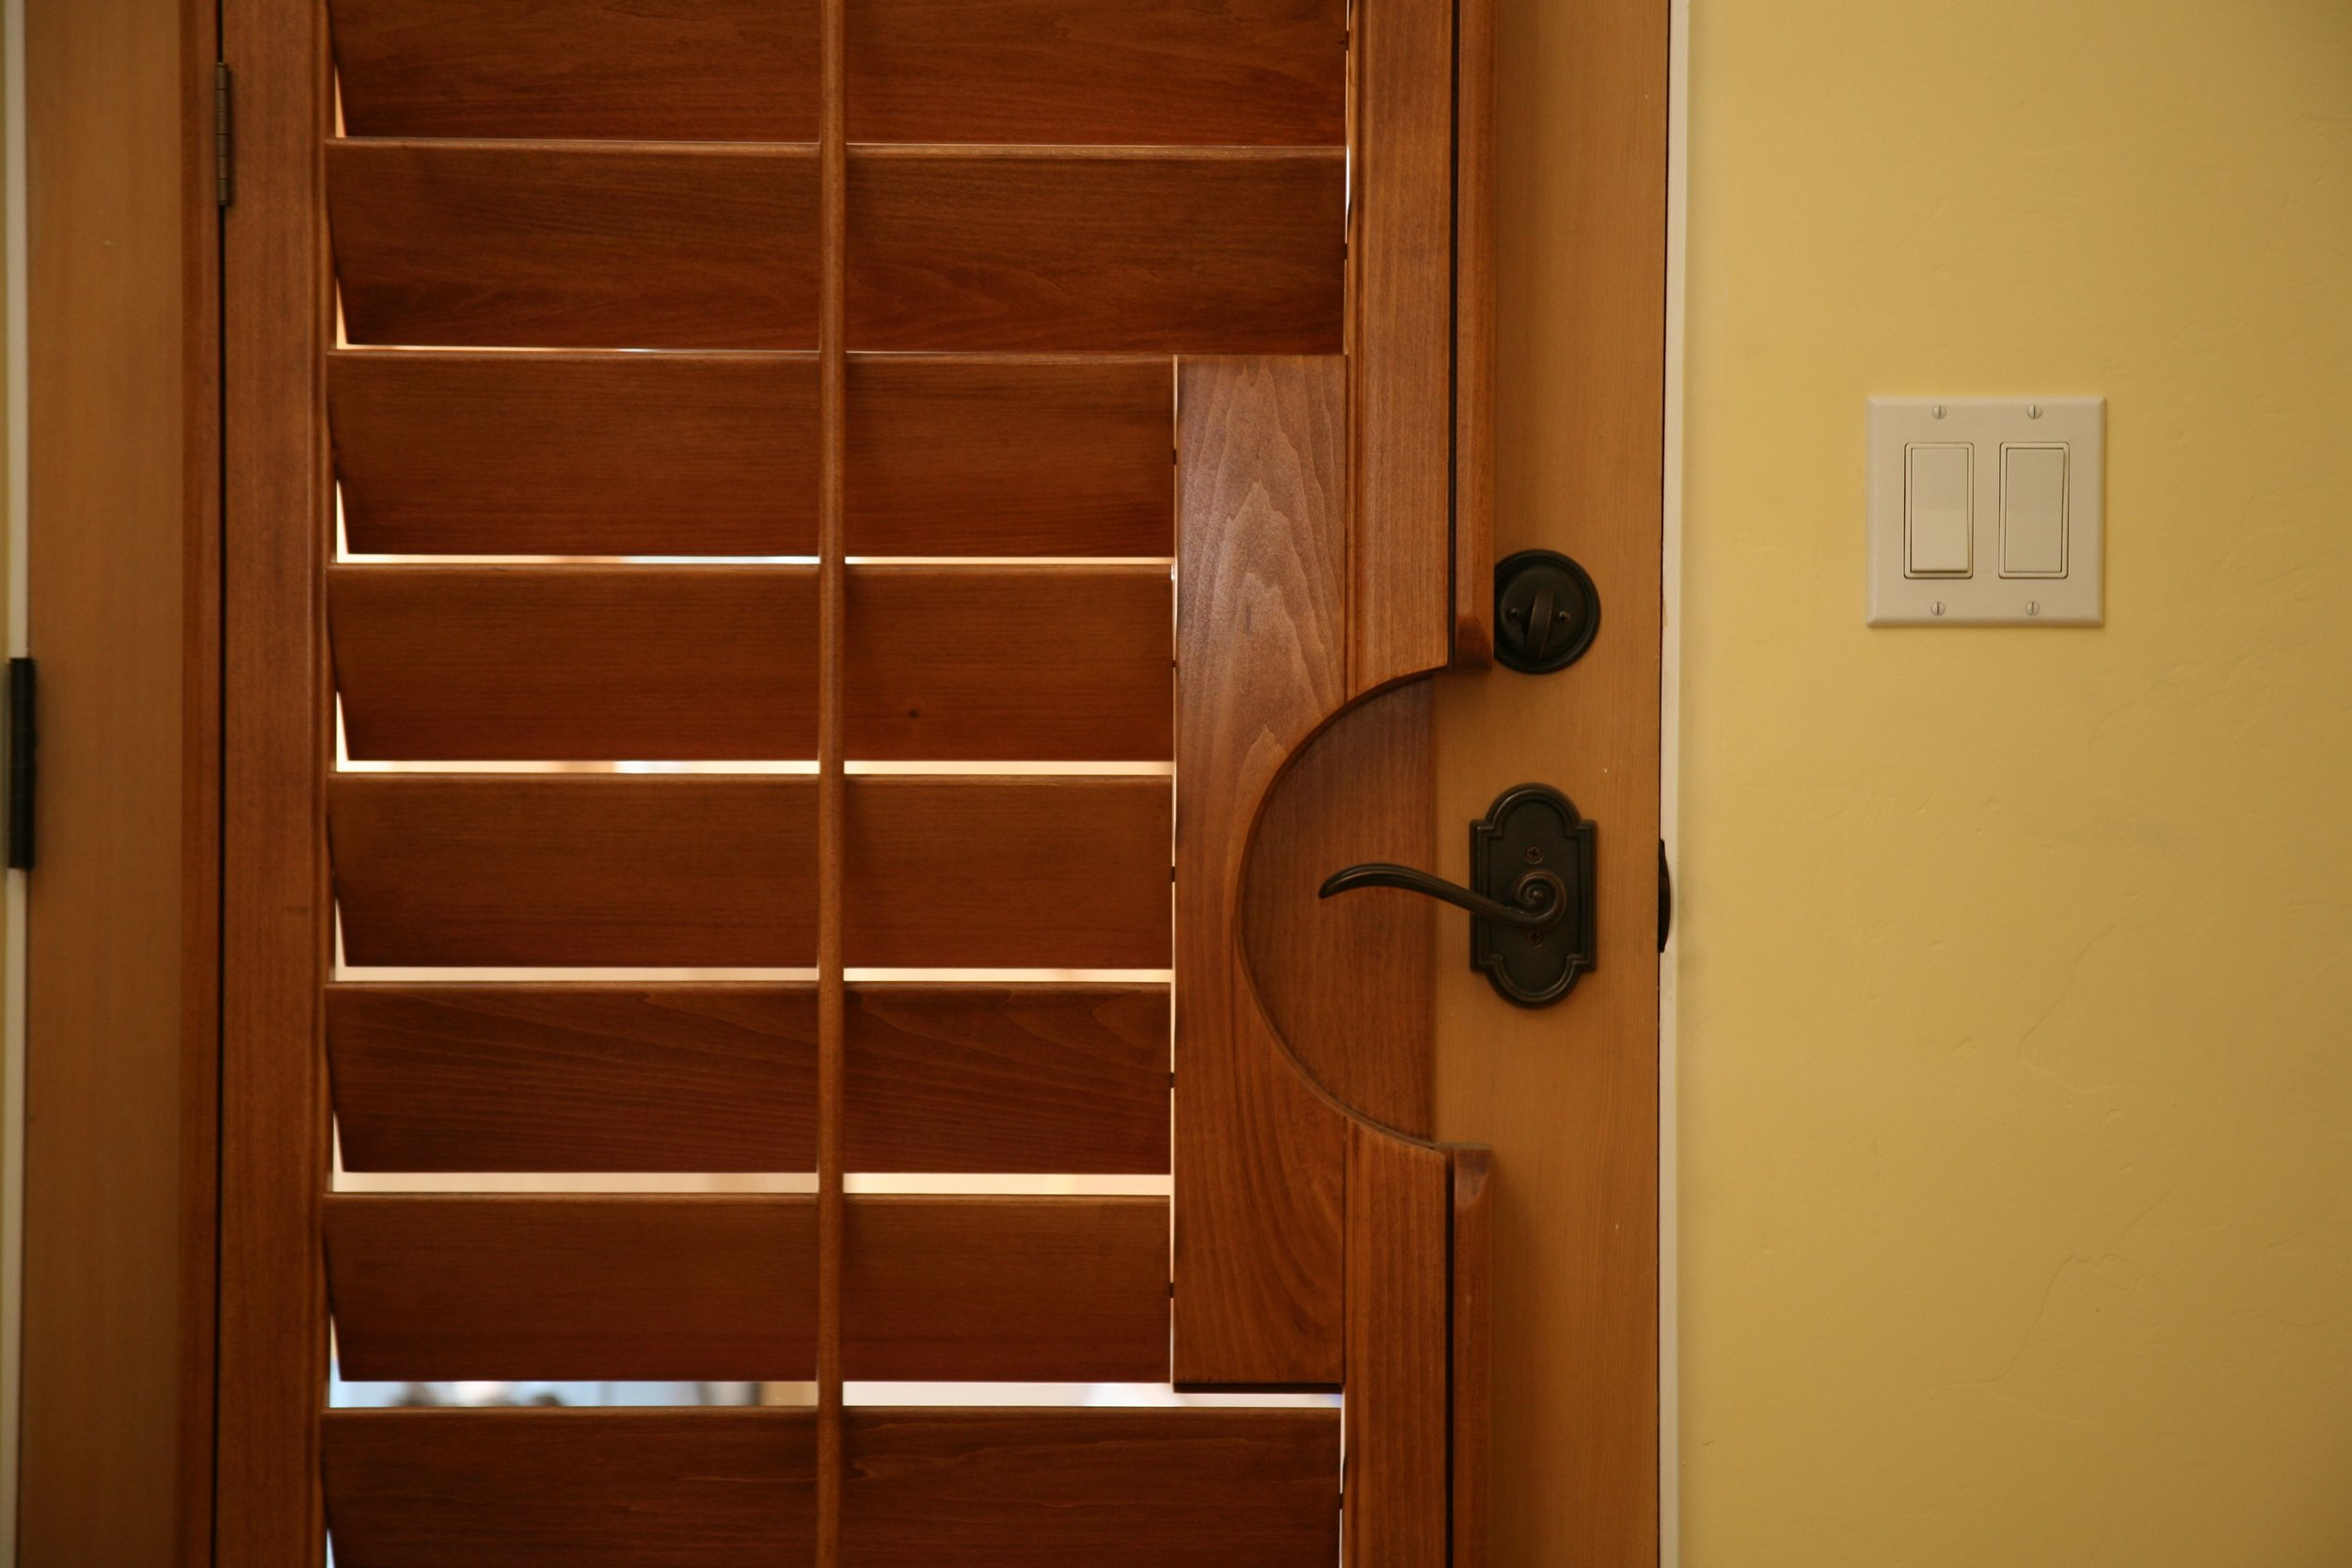 Handle cut-outs for lever-style door handles make opening and closing doors with plantation shutters easier.